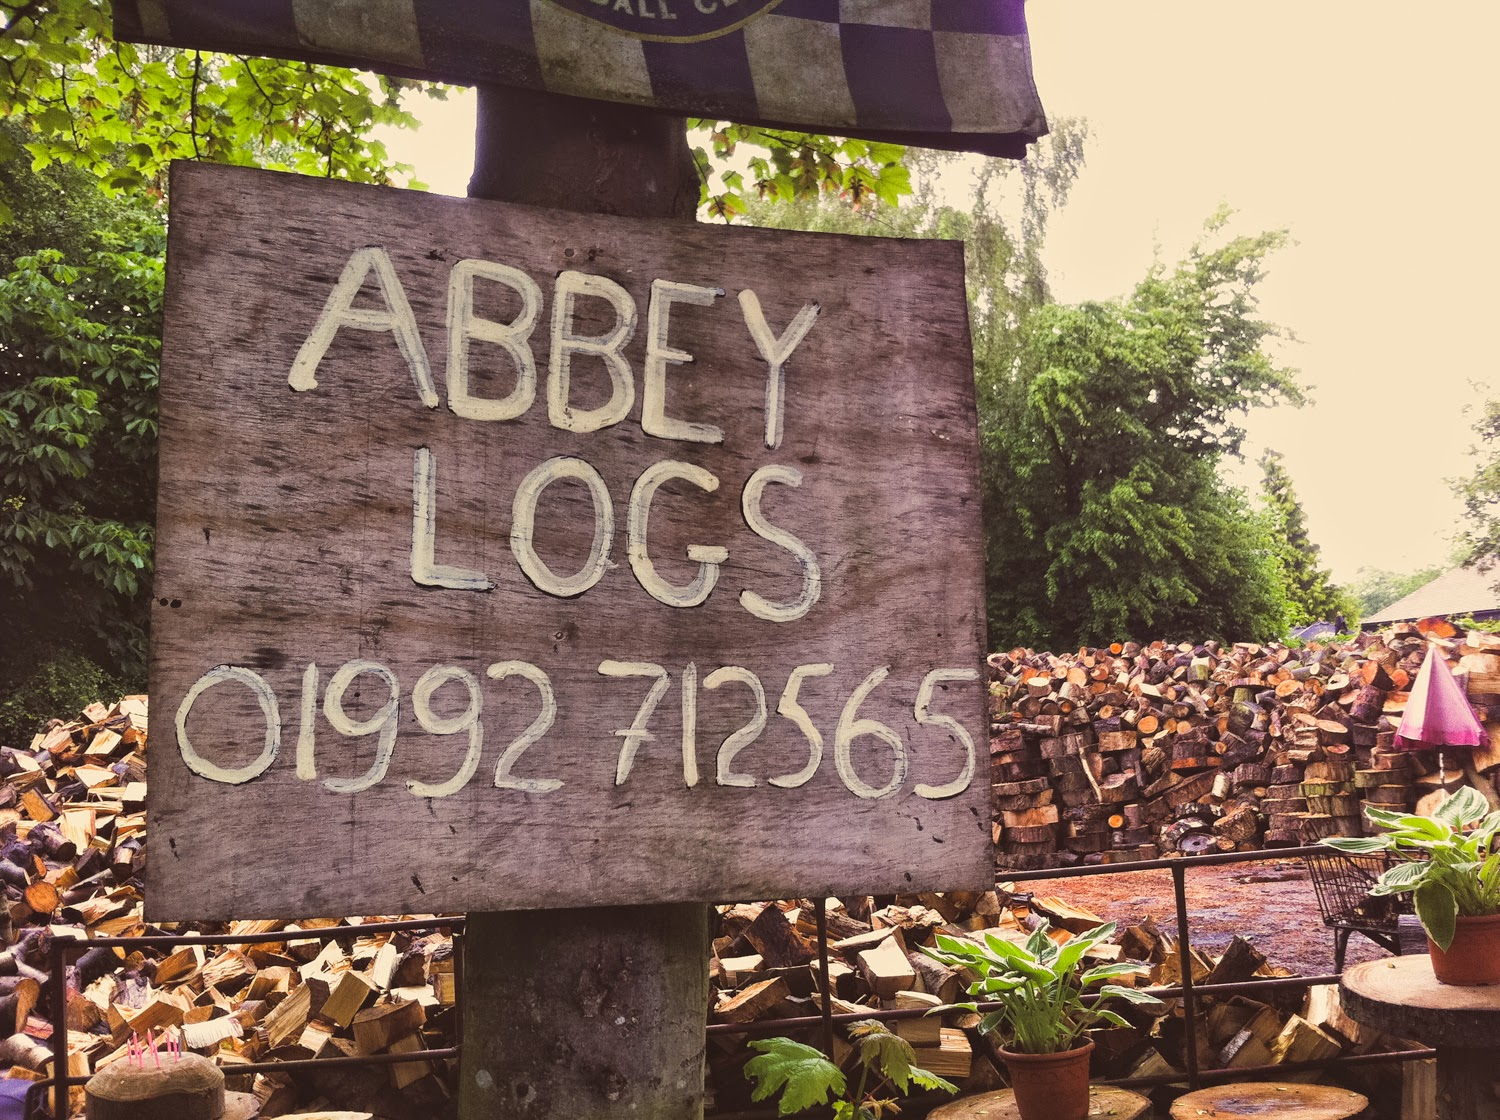 Waltham abbey logs